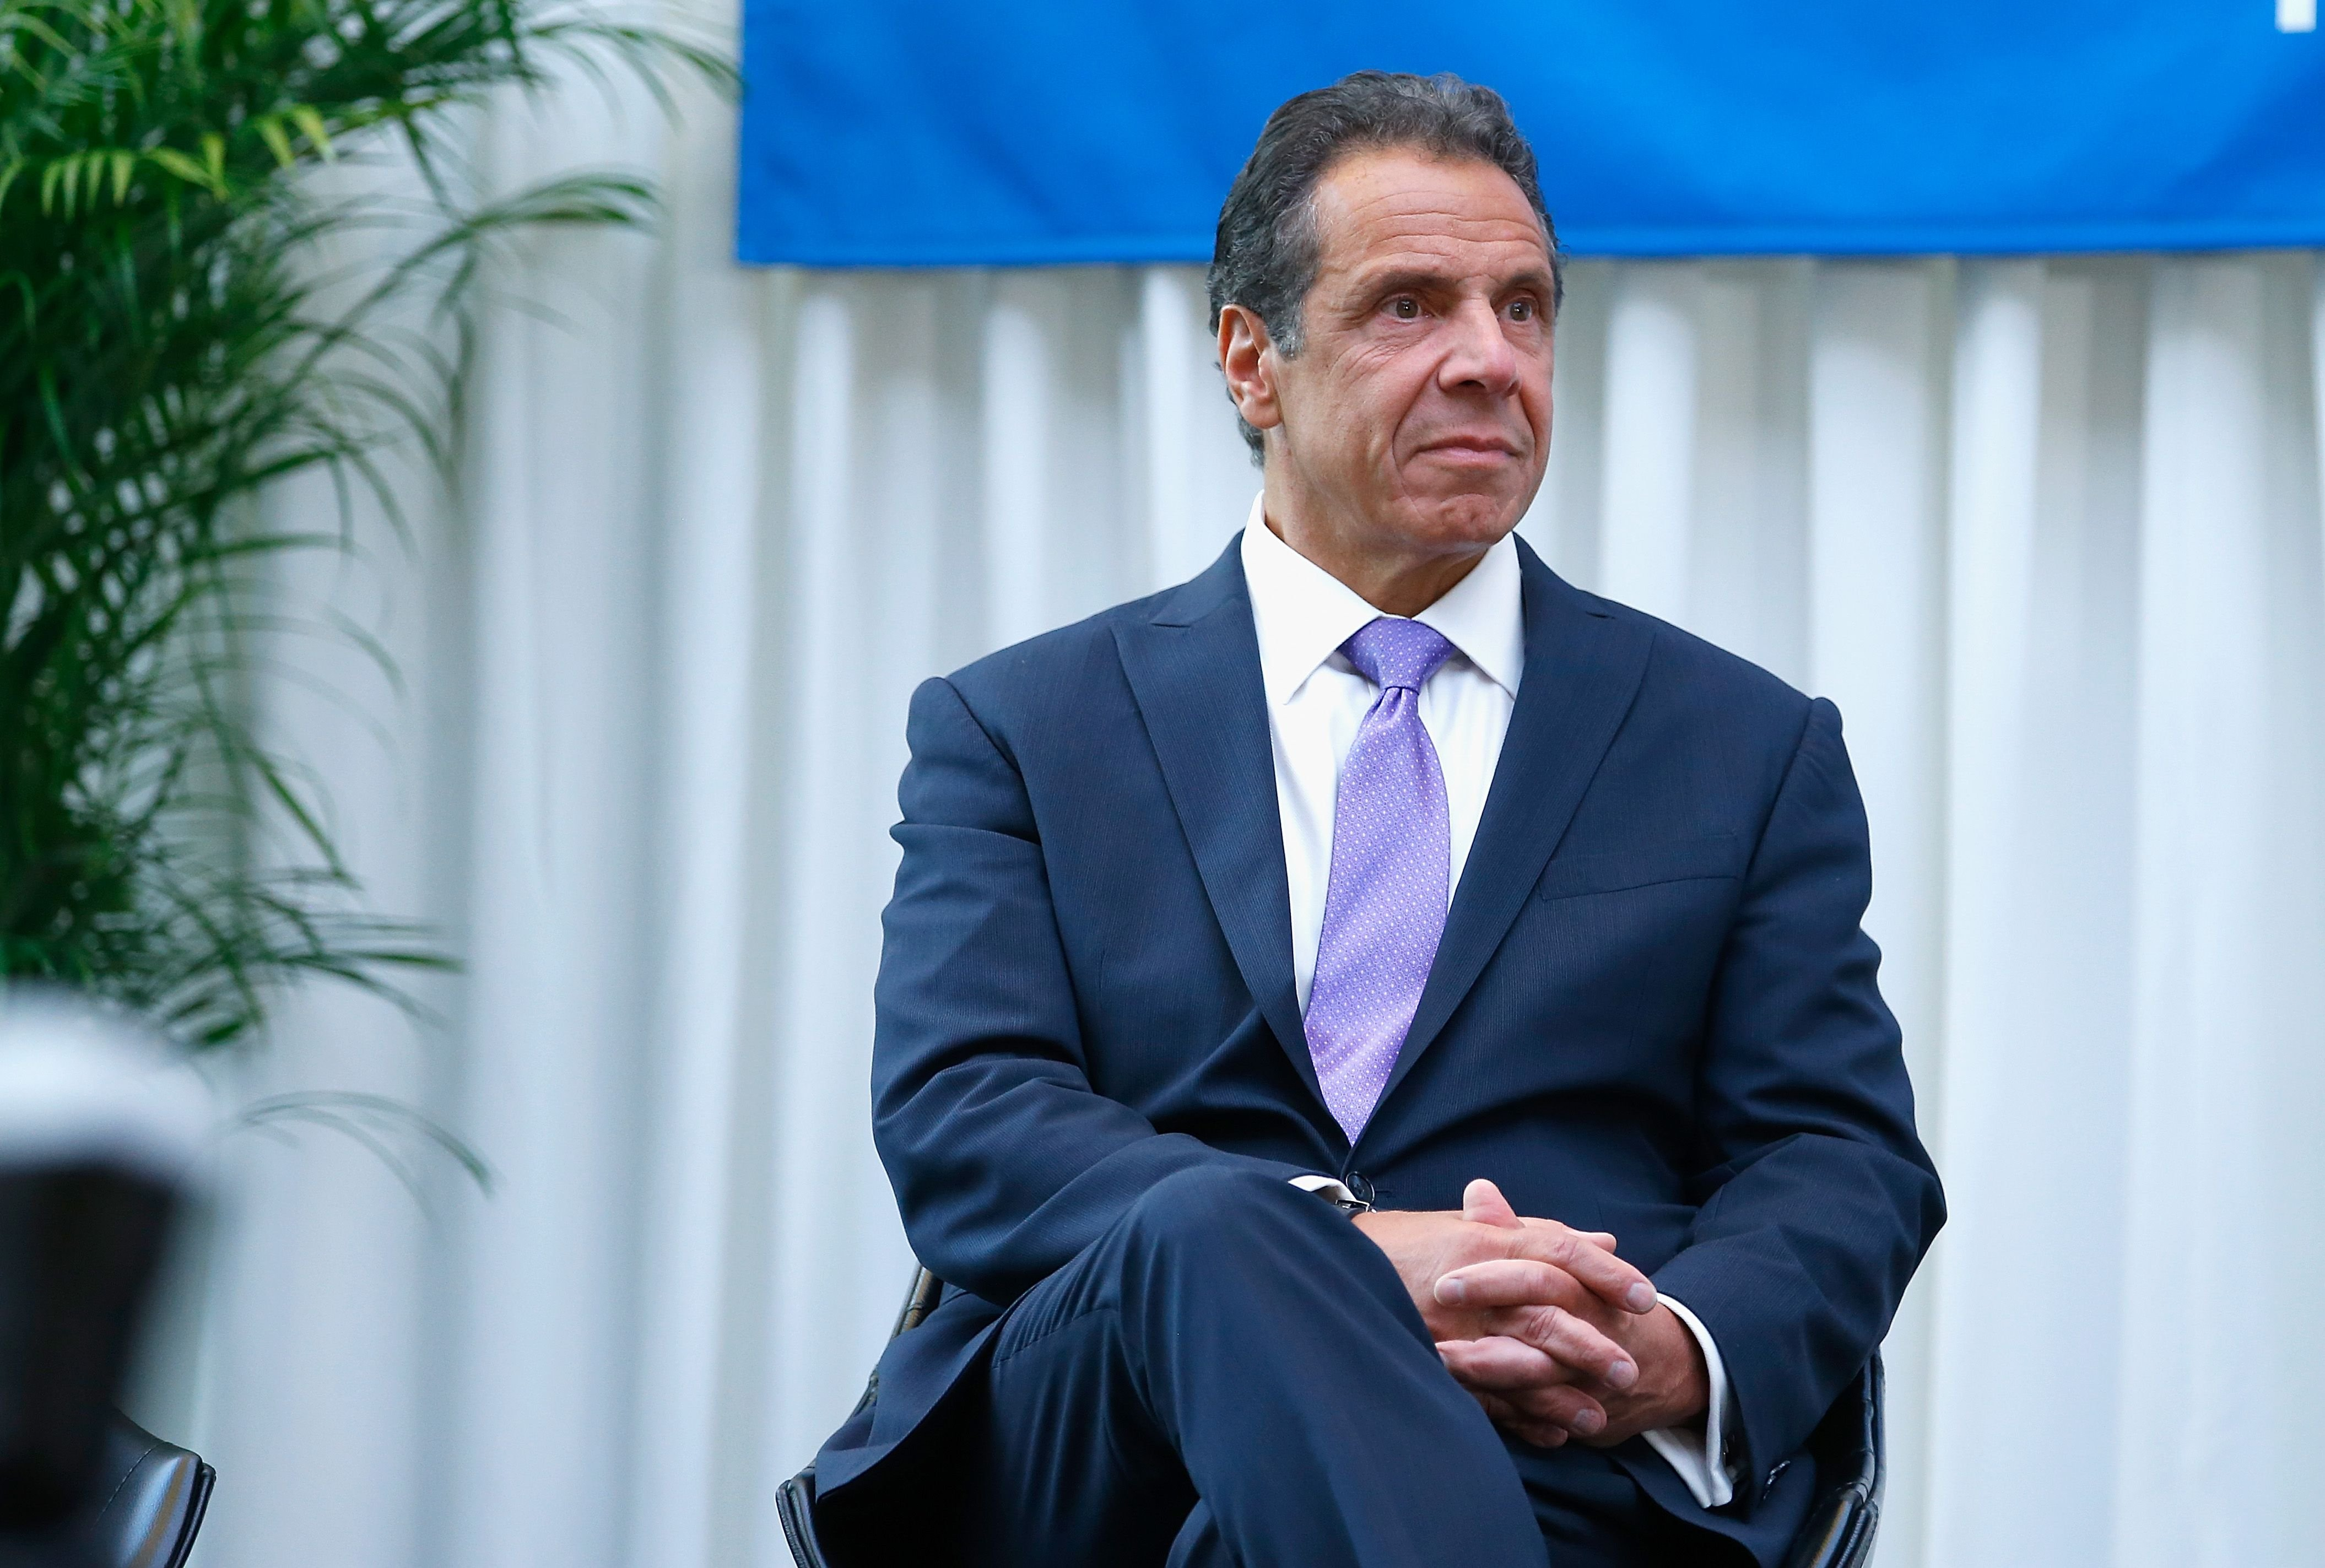 Andrew Cuomo at the Madison Square Garden celebration of Billy Joel's 100th lifetime show on July 18, 2018 | Photo: Getty Images